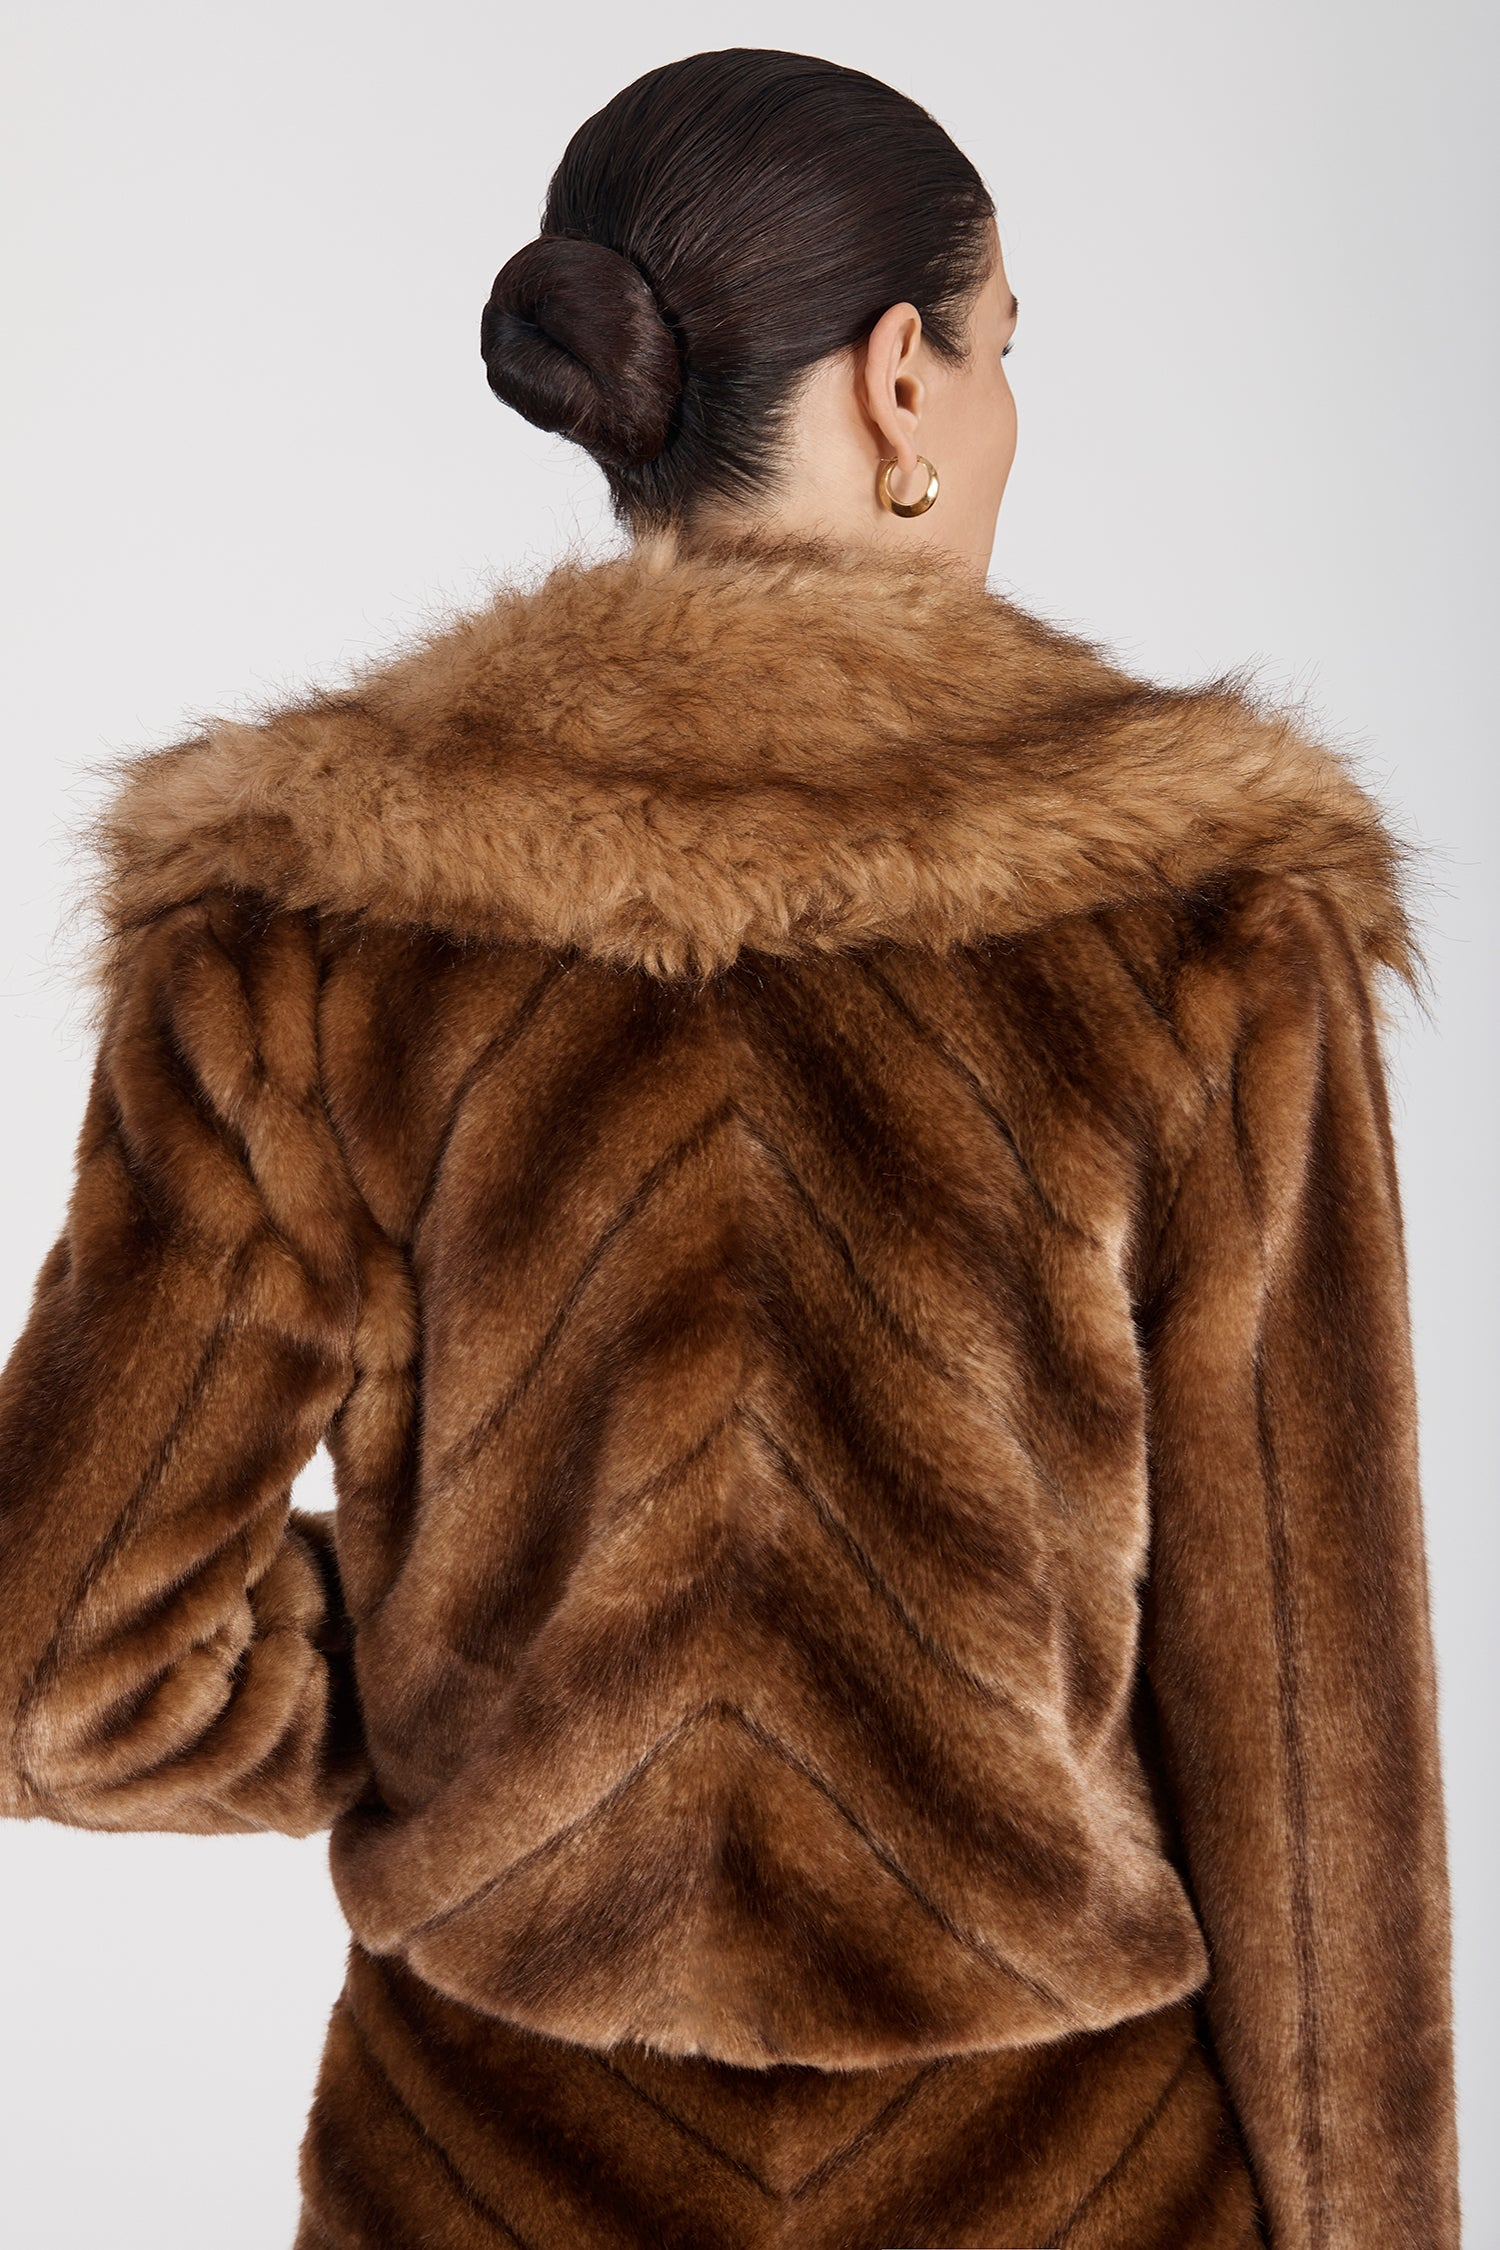 Marei1998's Oleander Faux Fur Short Jacket In Classic Brown Color. Featuring Wide Collar And Unique Front Buttons Made By An Italian Jewel Artisan. As Worn By The Model. Back View, Showing The Fur Texture Created By the Interesting Cut. Resort 2020 Collection - Furless Friendship.